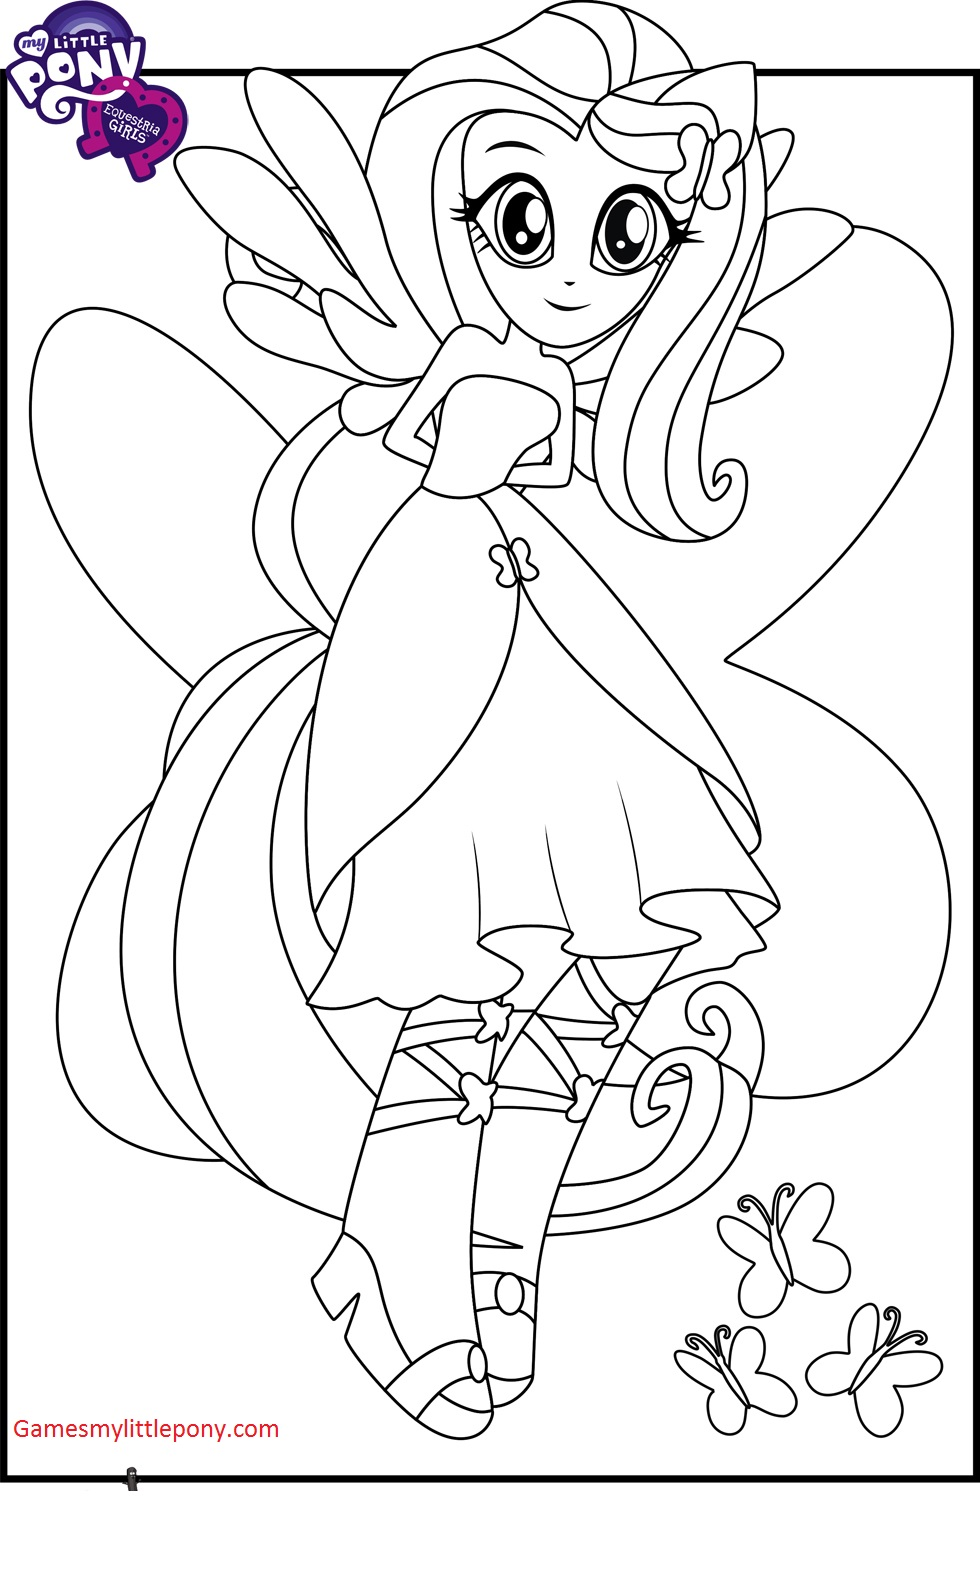 Equestria Girls Fluttershy Coloring Page - My Little Pony Coloring Pages